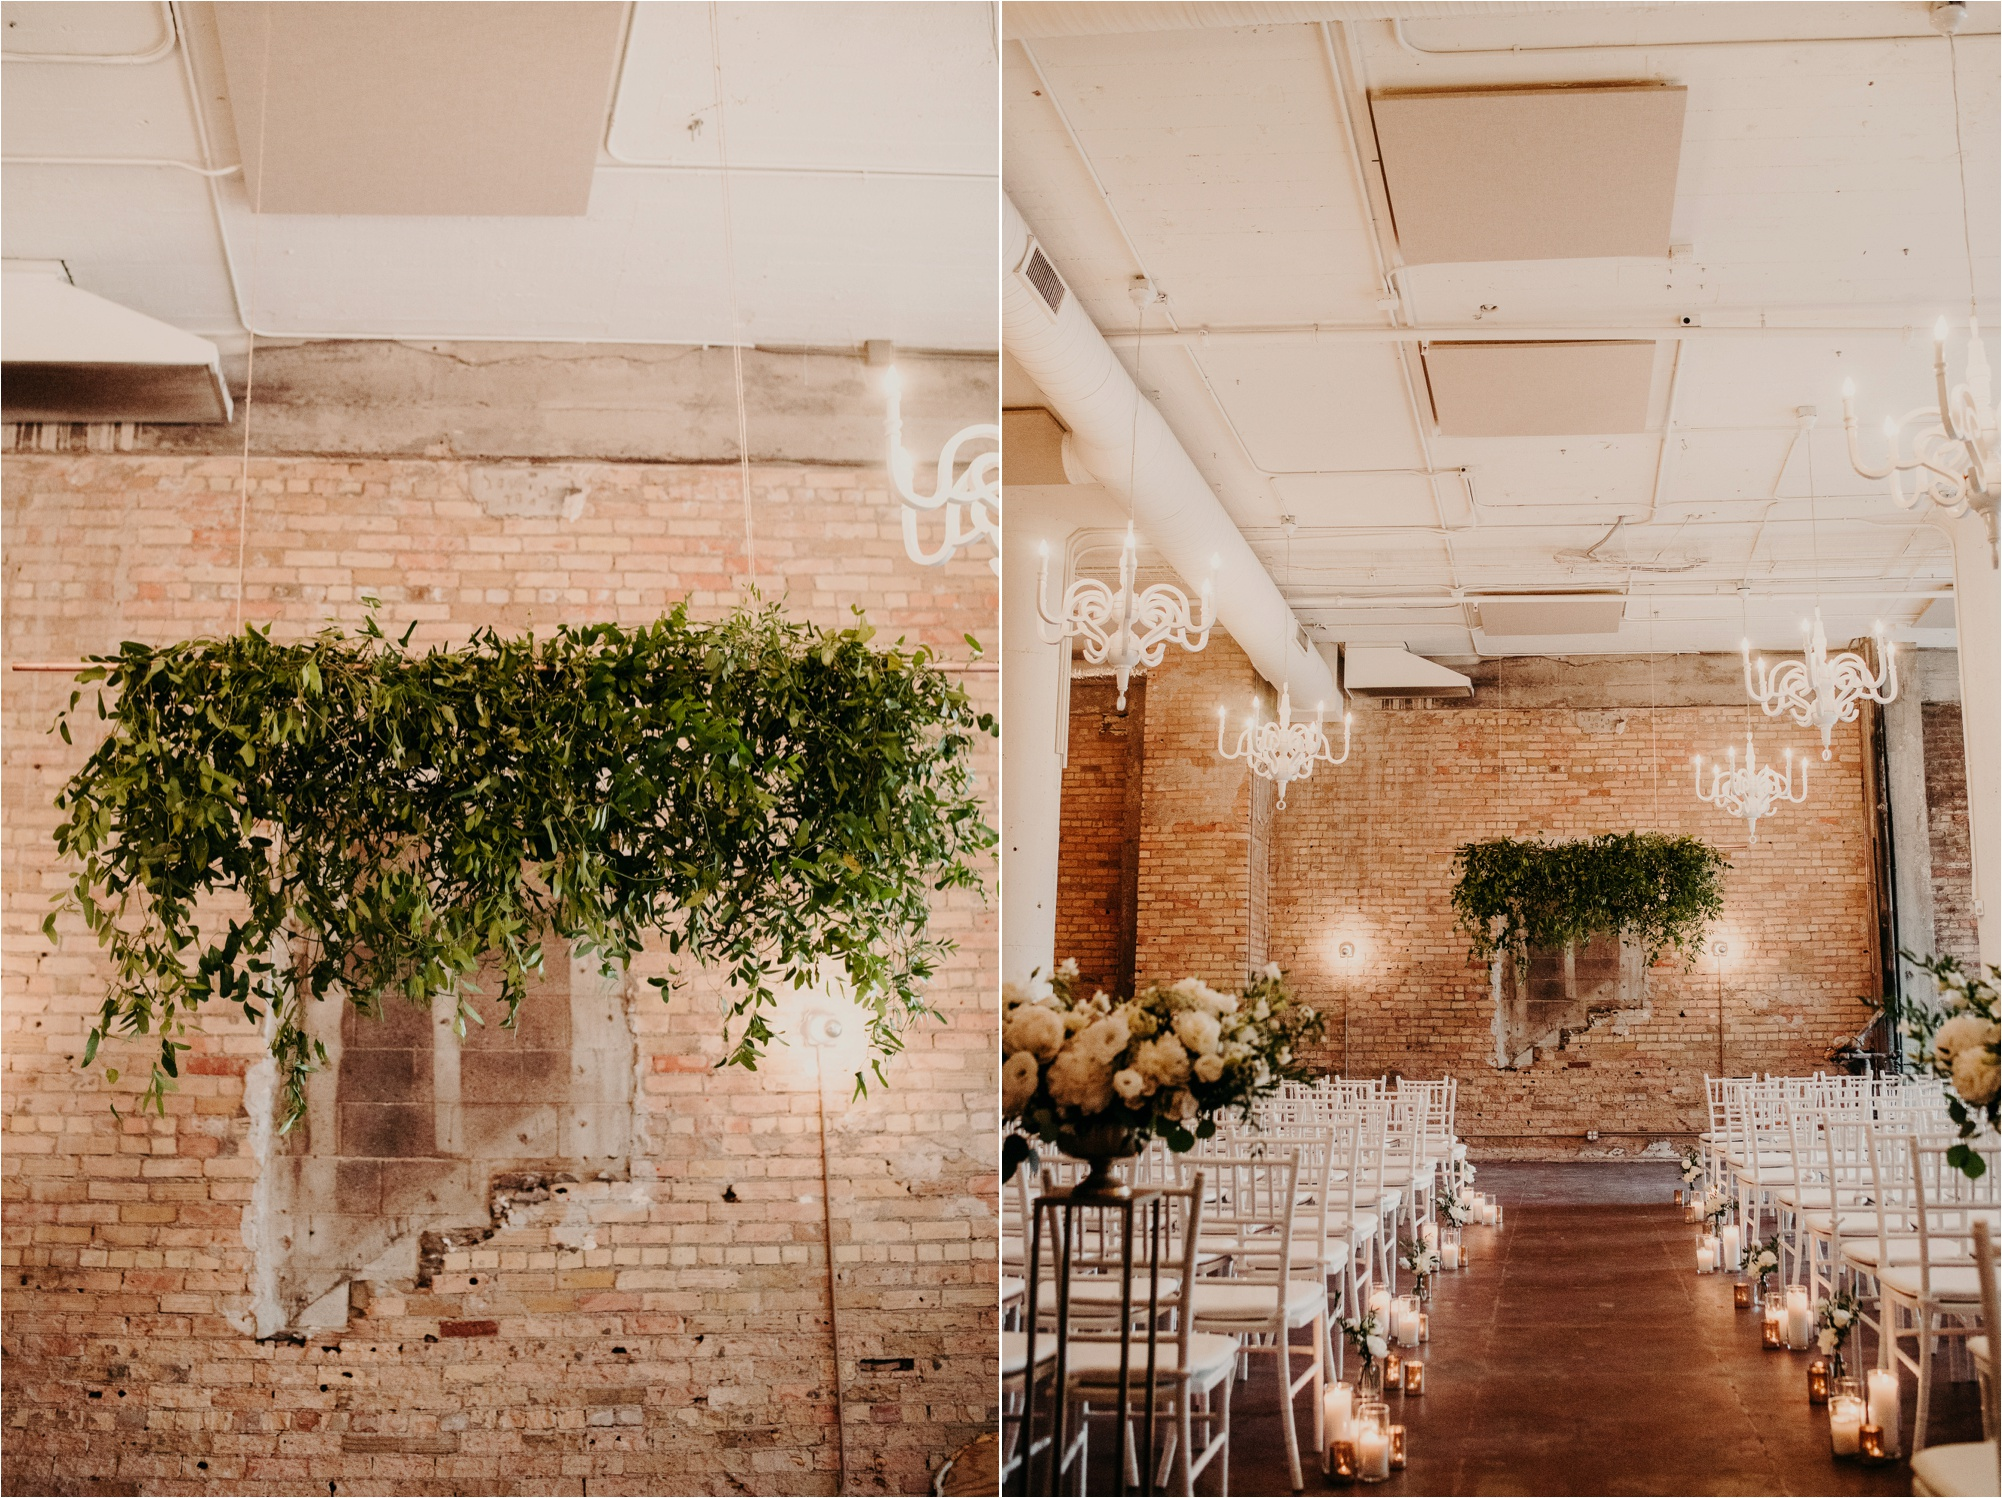 loring social minneapolis wedding ceremony space pristine floral buck and rose d'amico catering